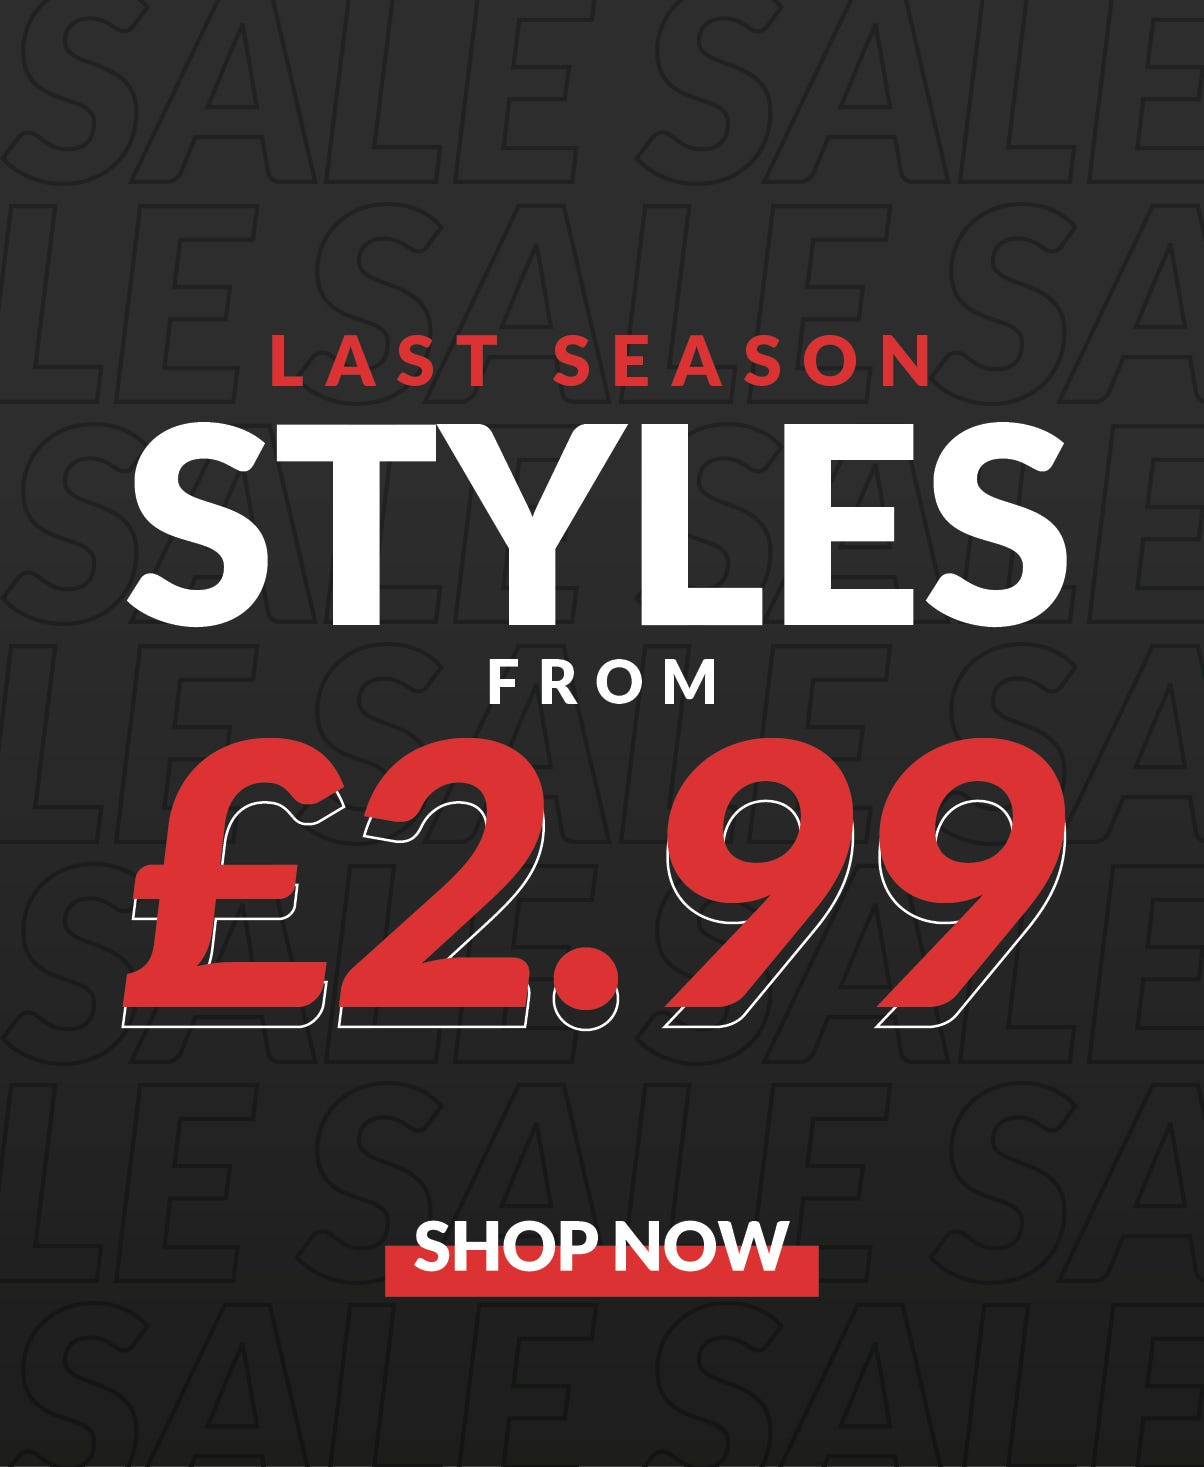 STYLES FROM £2.99